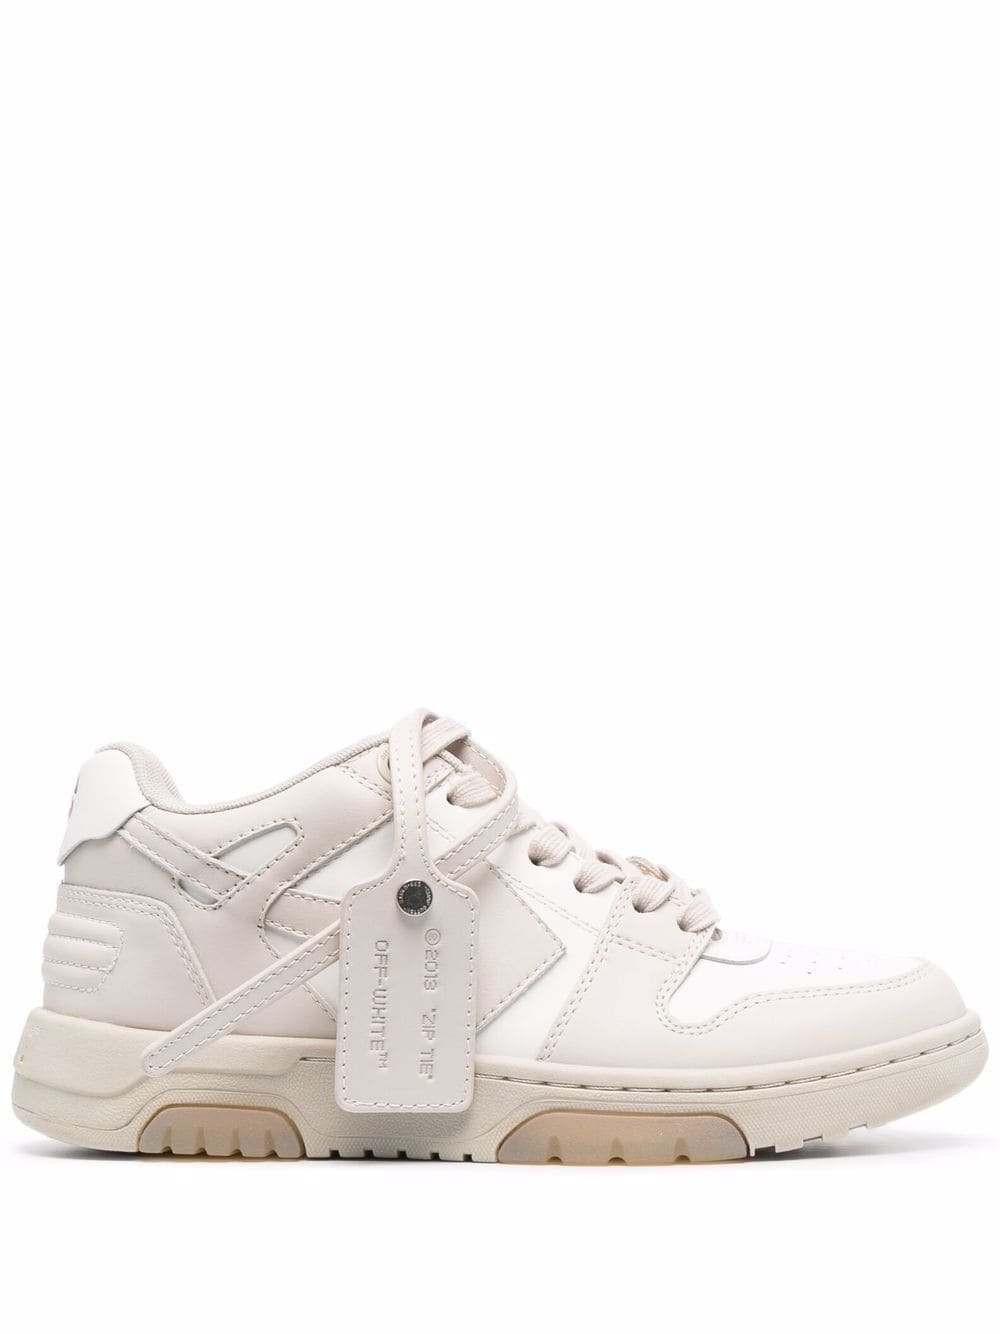 Out Of Office Sneakers in Weiß-Beige